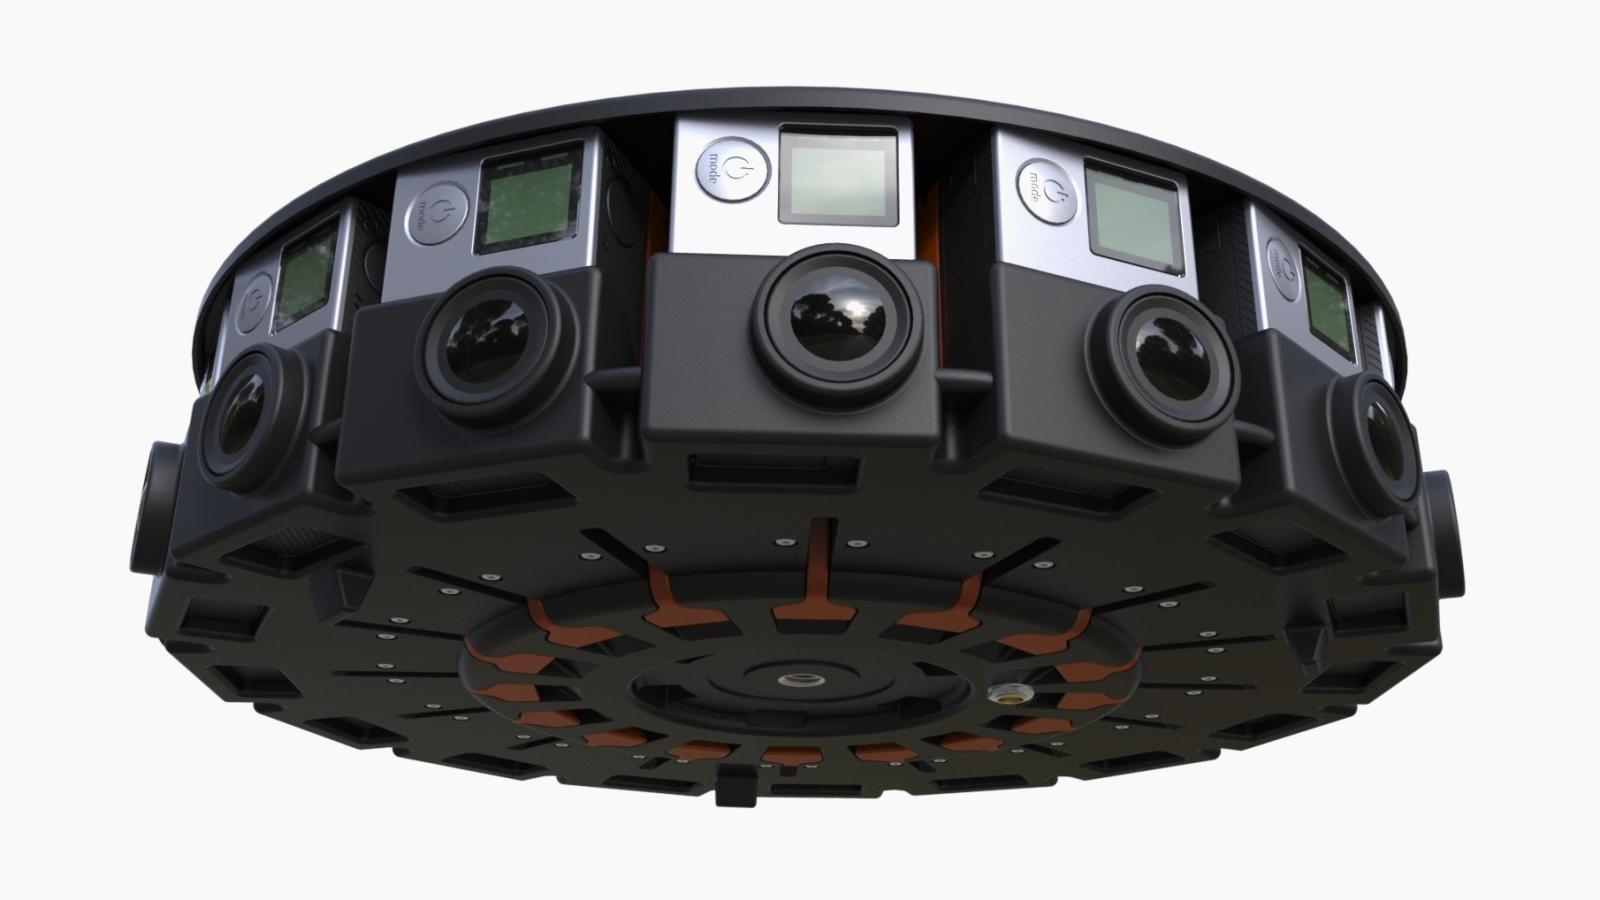 GoPro and Google are partnering to make 360-degree virtual